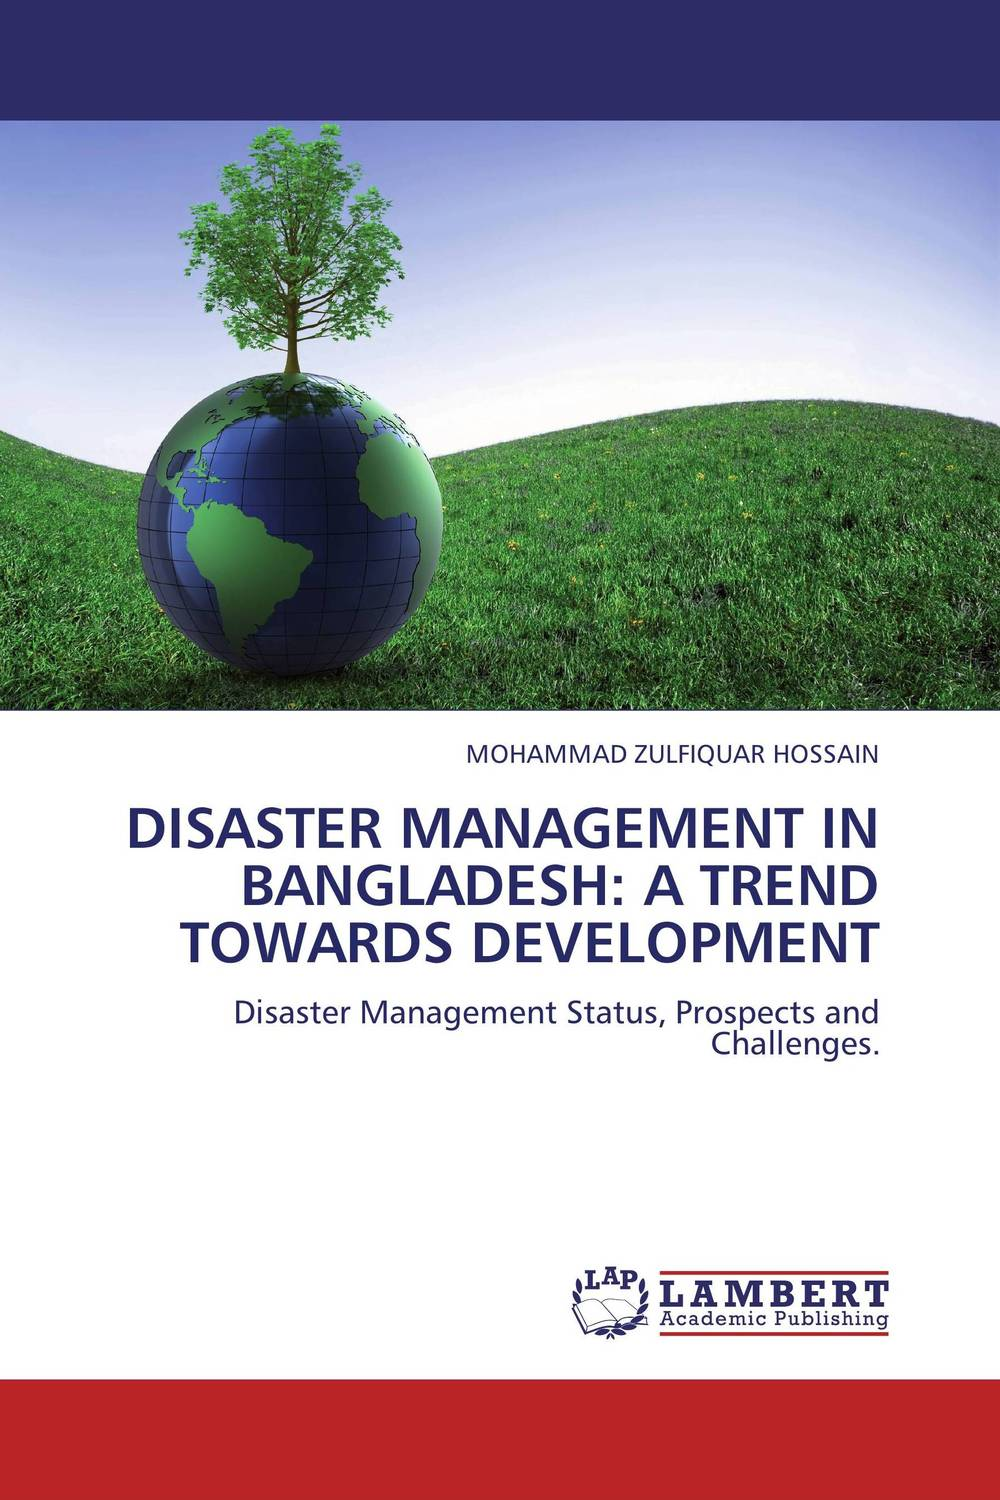 DISASTER MANAGEMENT IN BANGLADESH: A TREND TOWARDS DEVELOPMENT ballis stacey recipe for disaster